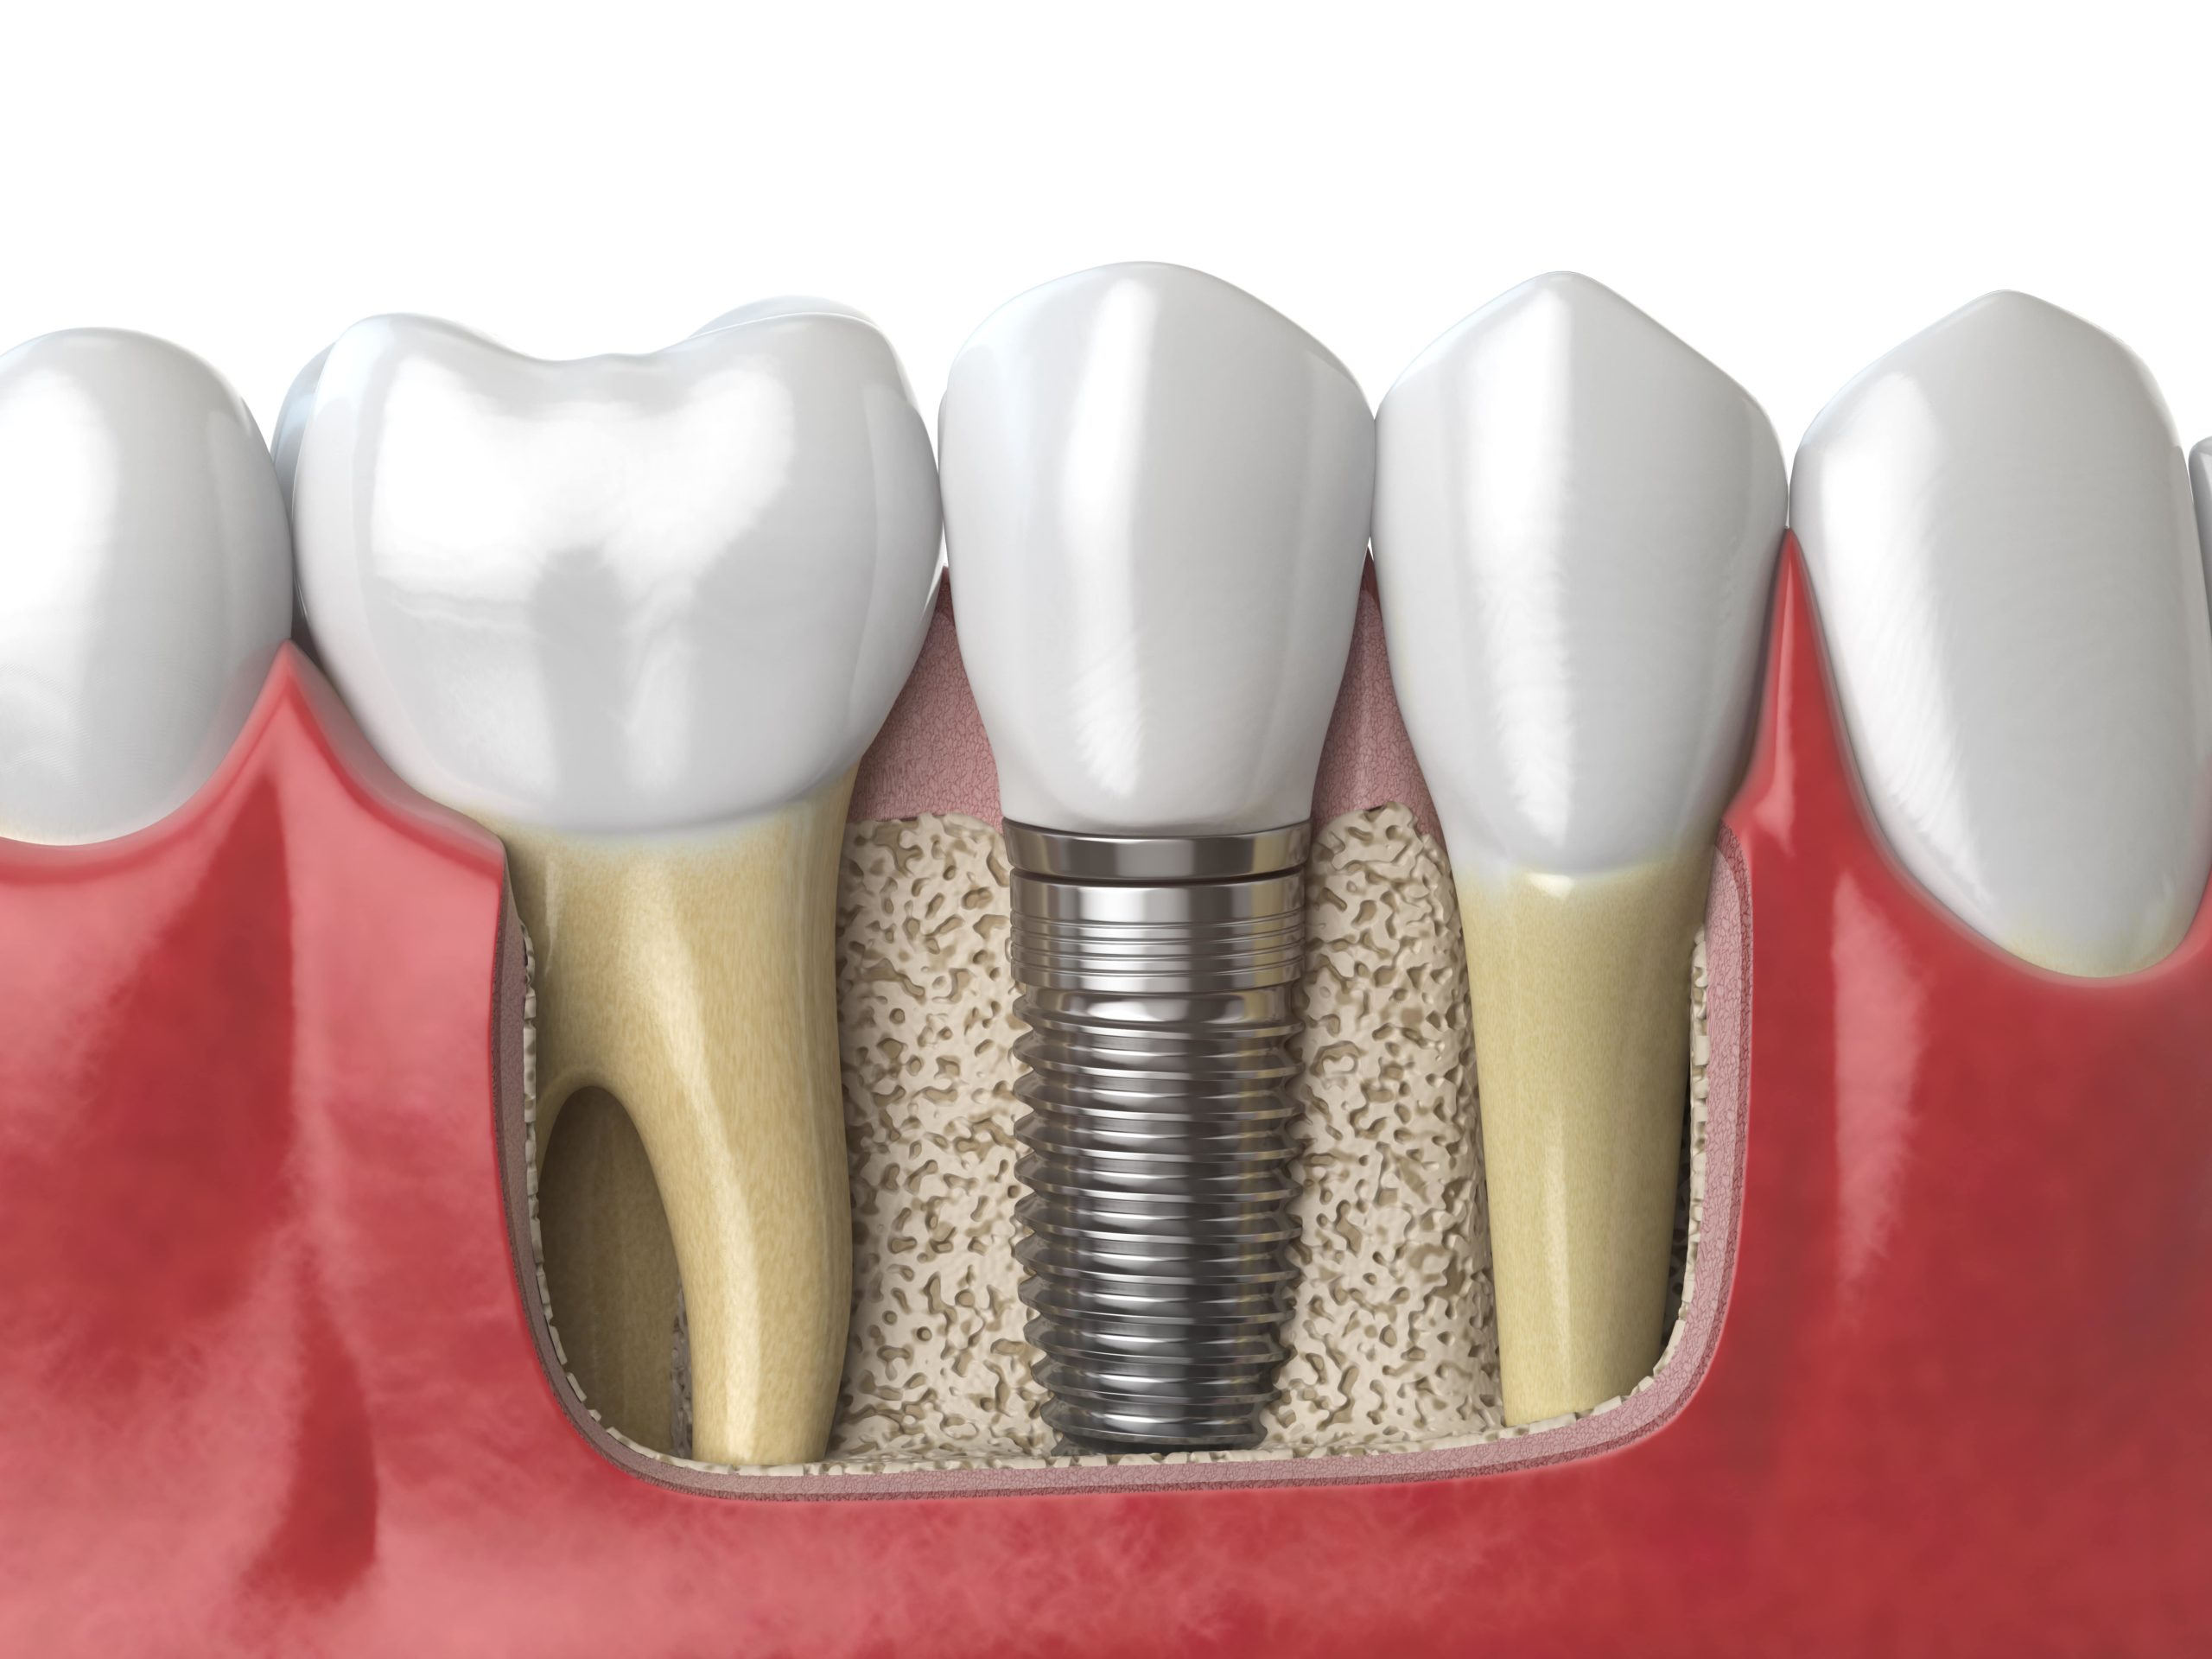 The best dental implants in